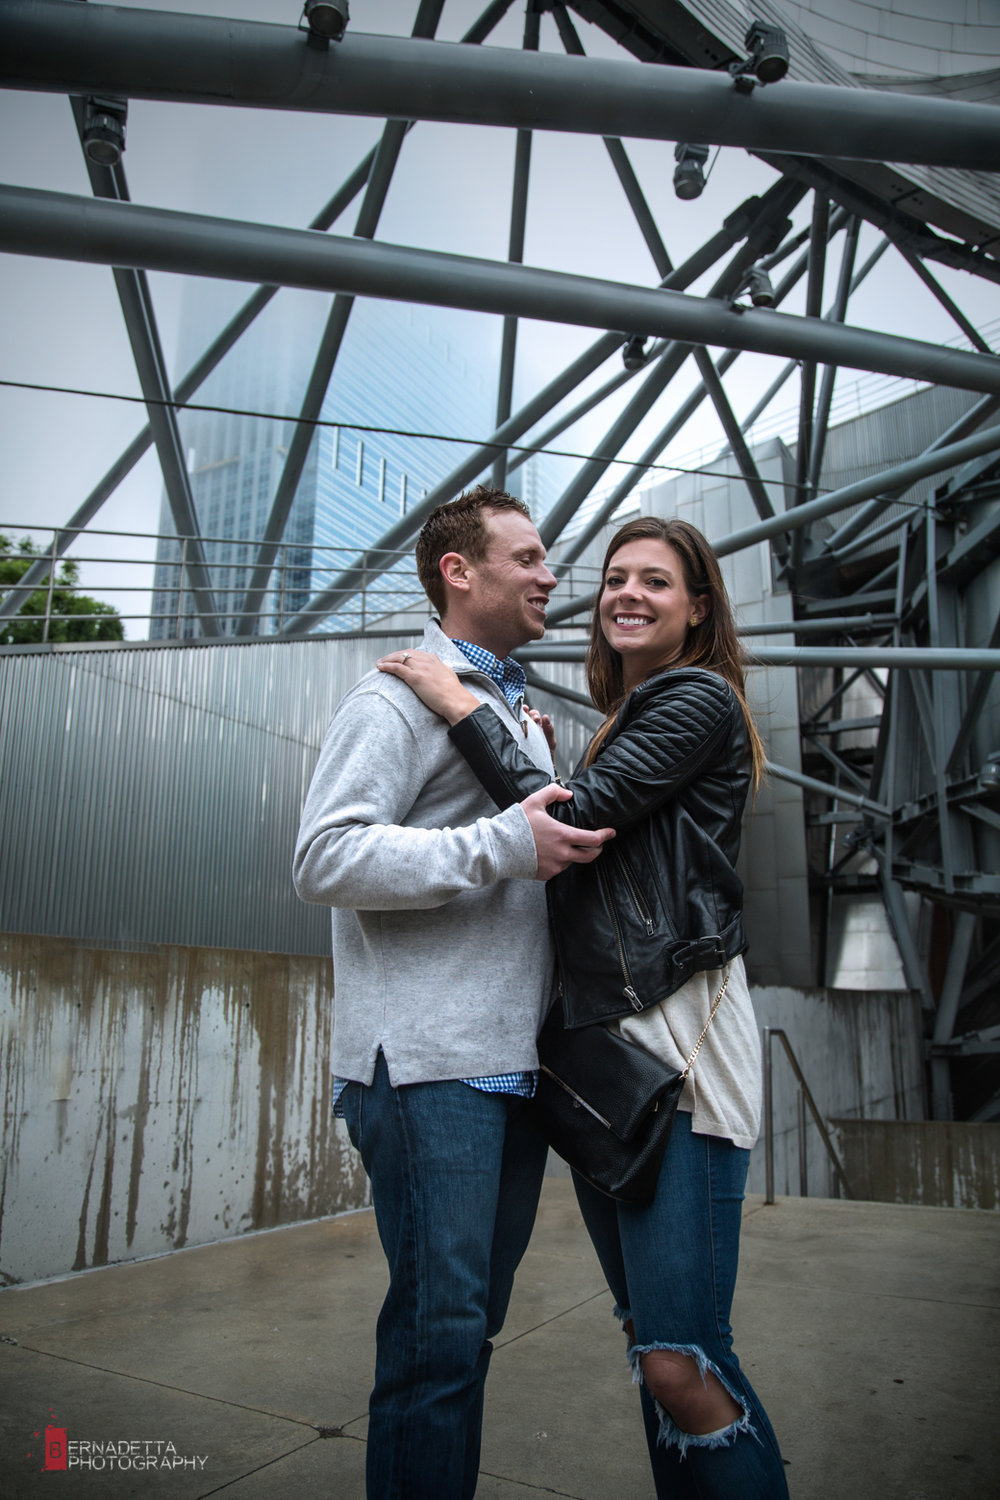 Engagement session at Jay Pritzker Pavilion